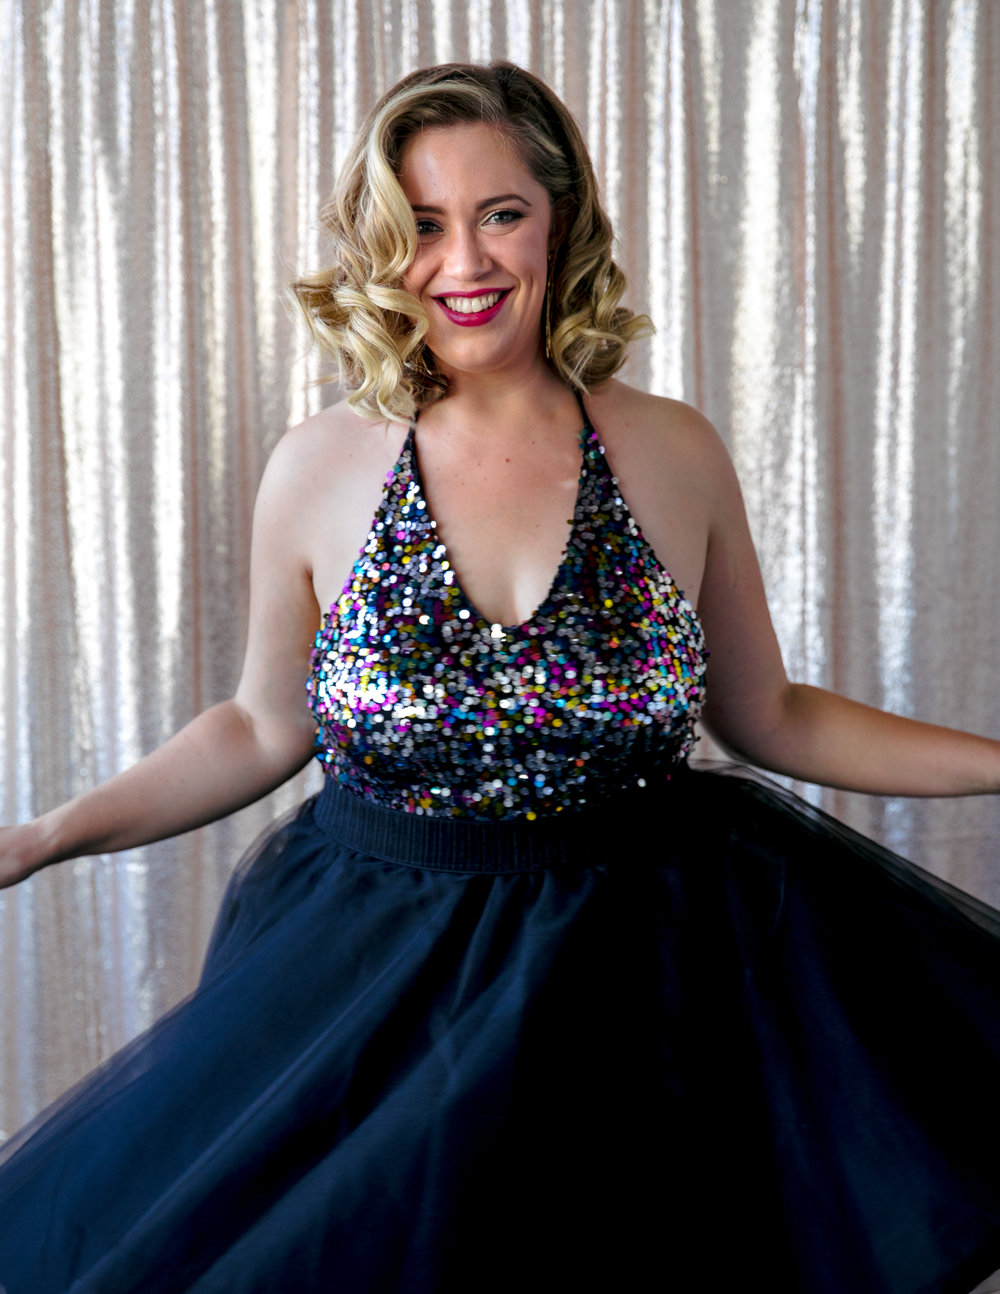 san jose california makeup artist kim baker beauty celebrates 30th birthday with a fun photoshoot wearing marilyn monroe hair and makeup with a bold pink lip